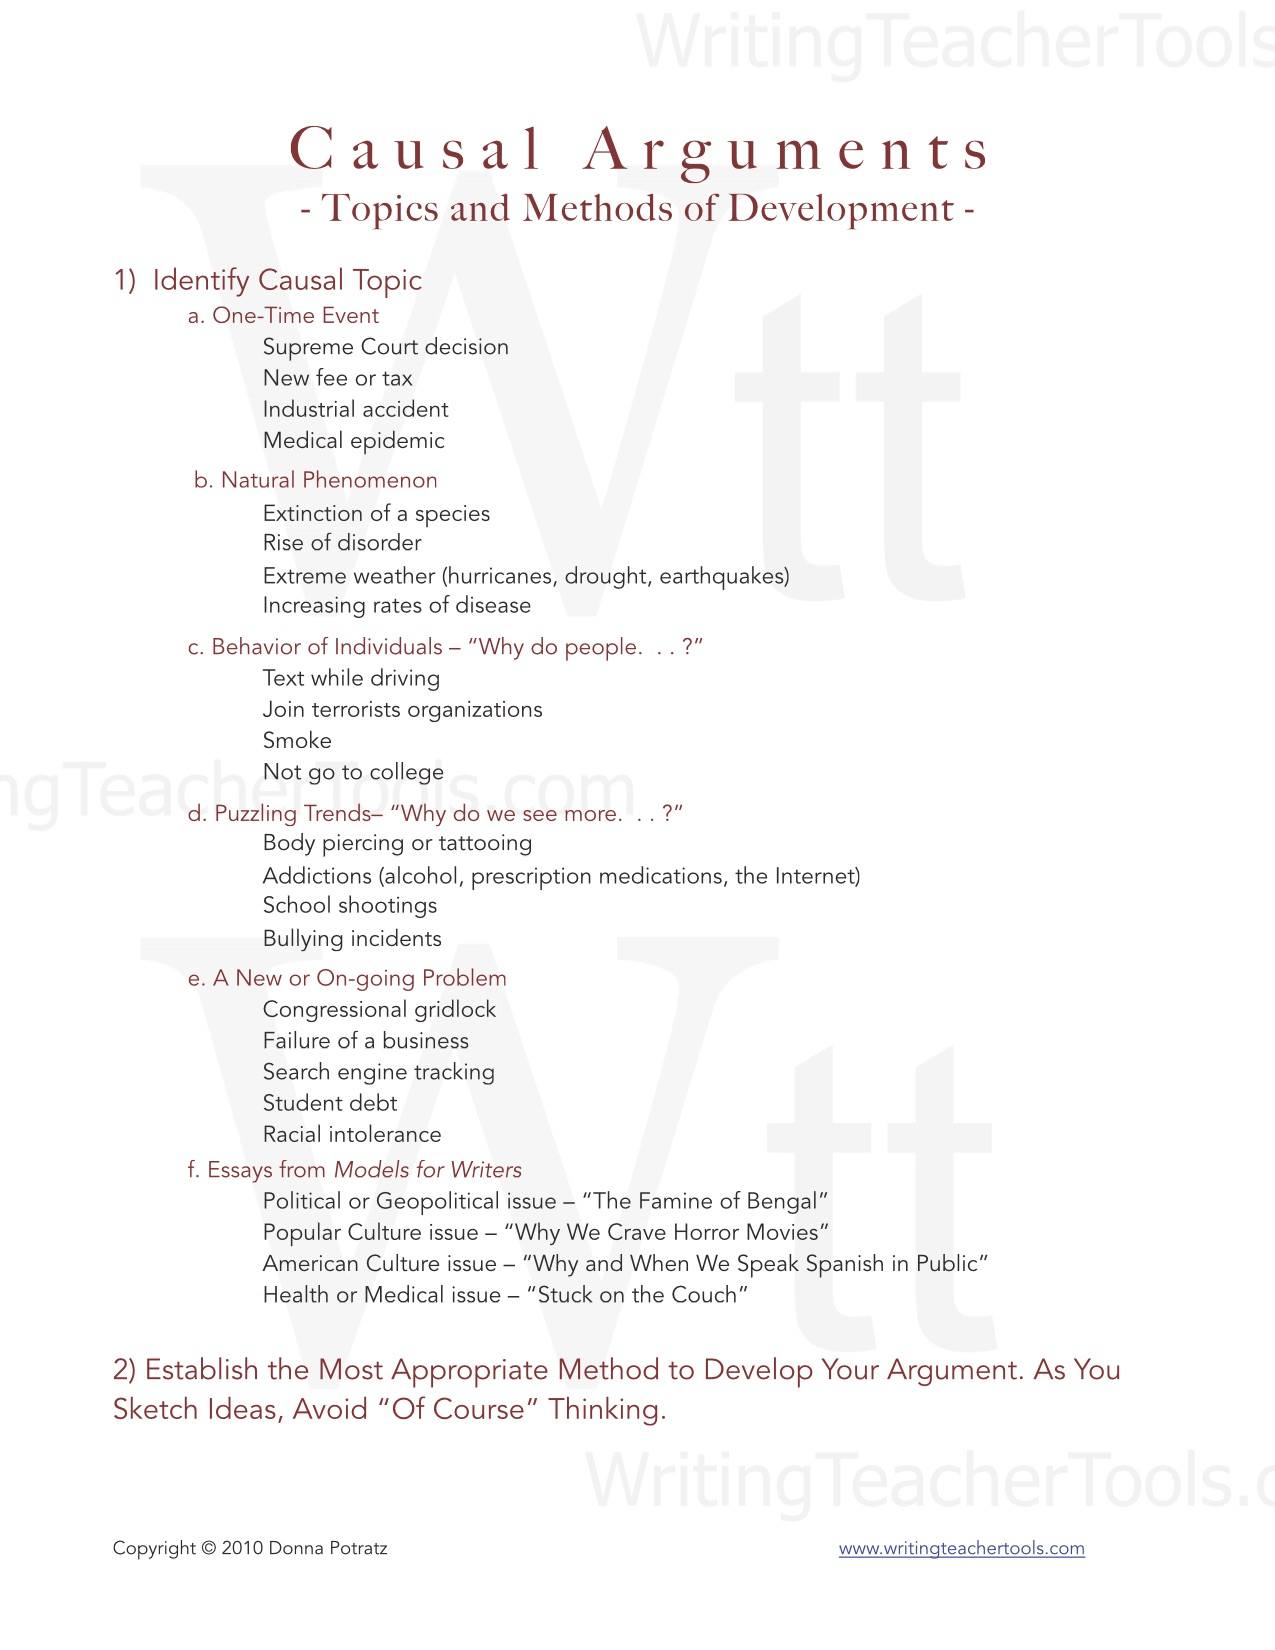 020 Evaluation Essay Topics Example Evaluative Causal For Argument And Methods Of Awful Questions With Criteria Full